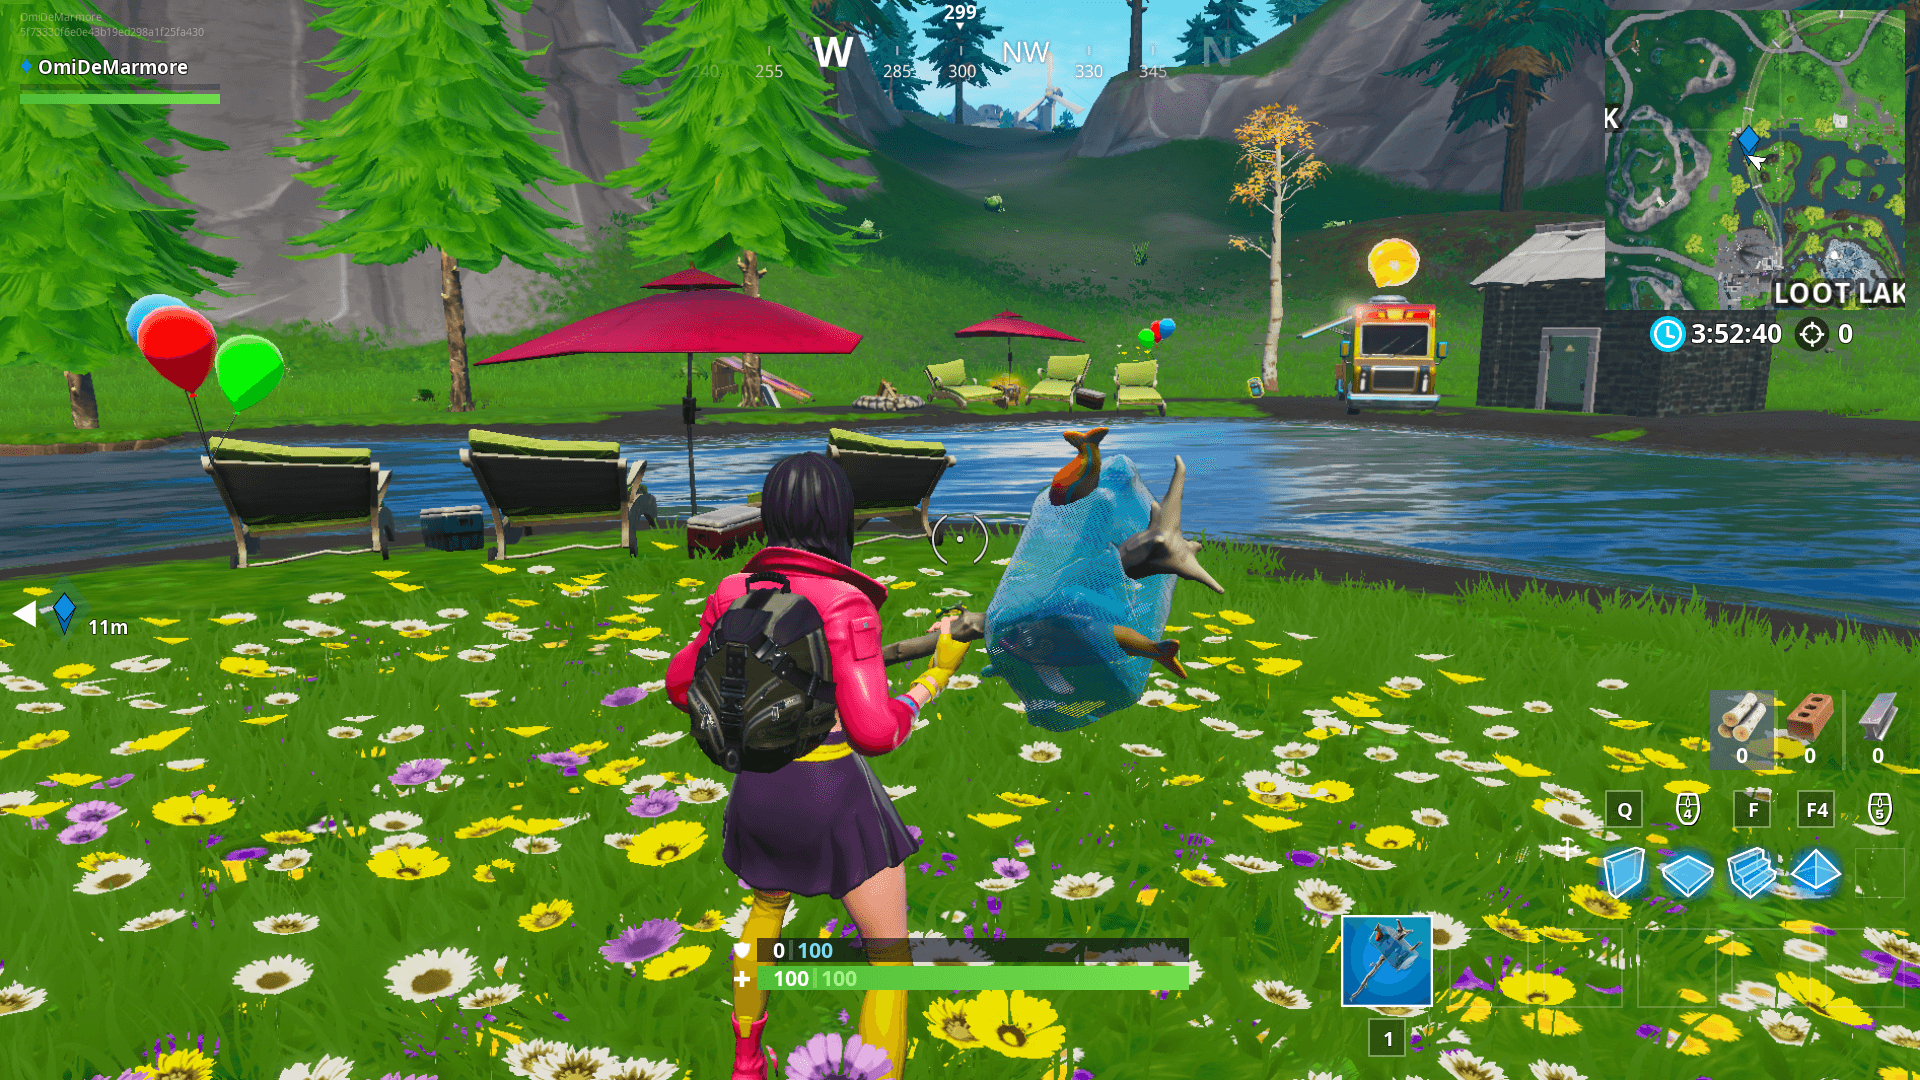 Fortnite: Party Balloon Decorations Locations (14 Days of Summer